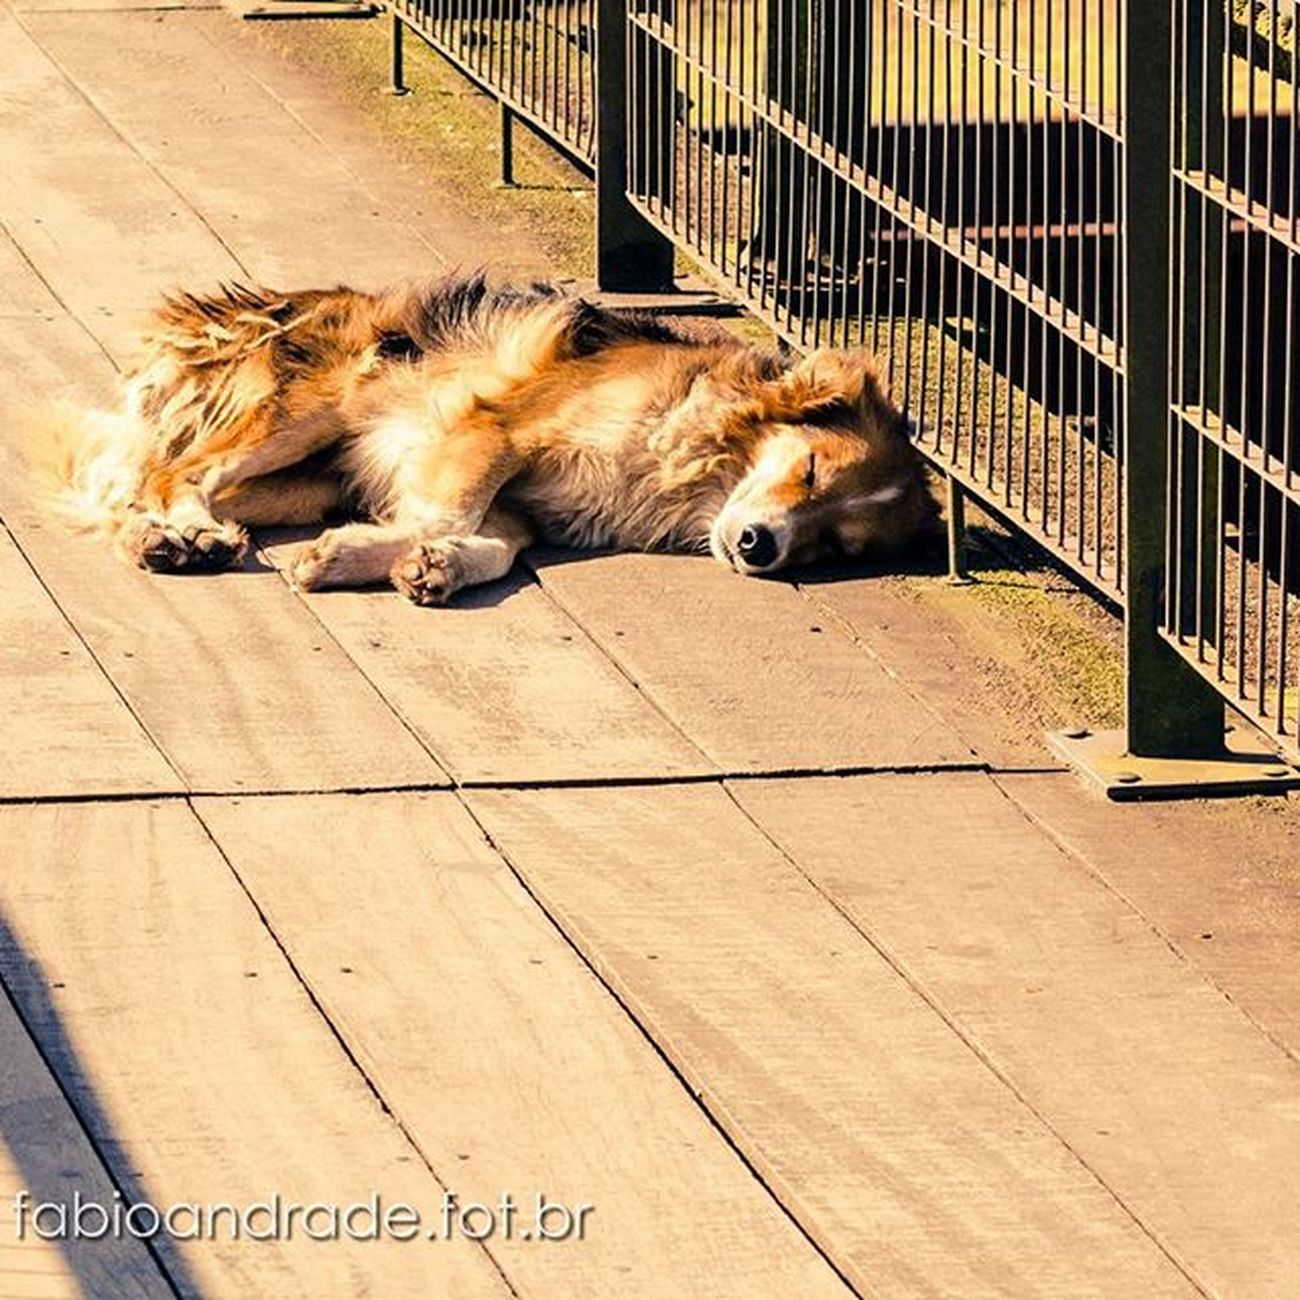 Paranapiacaba. Paranapiacaba Ferrugem Trem Ferrovia Companhiaferroviariadesp Saopaulorailway Beautifulday Beauty Nikontop Nikon Artbaia Photography 50mm Dogstagram Dog Streetdog Cao Cachorro